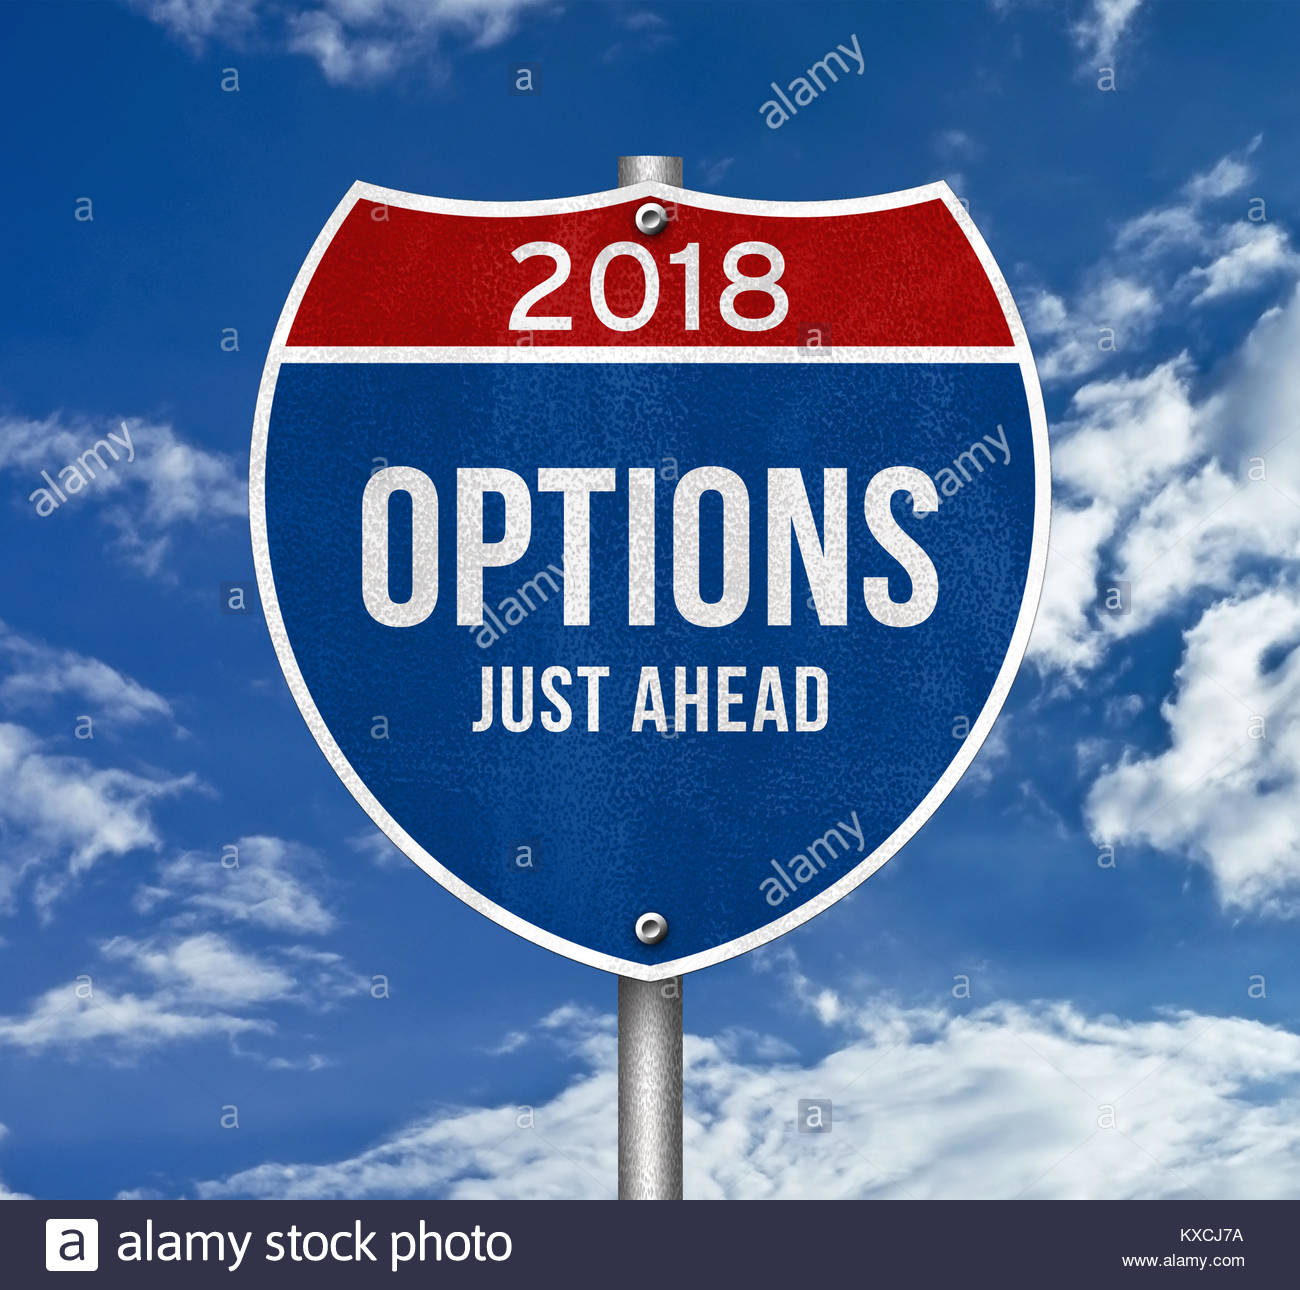 Options - just ahead - Stock Image